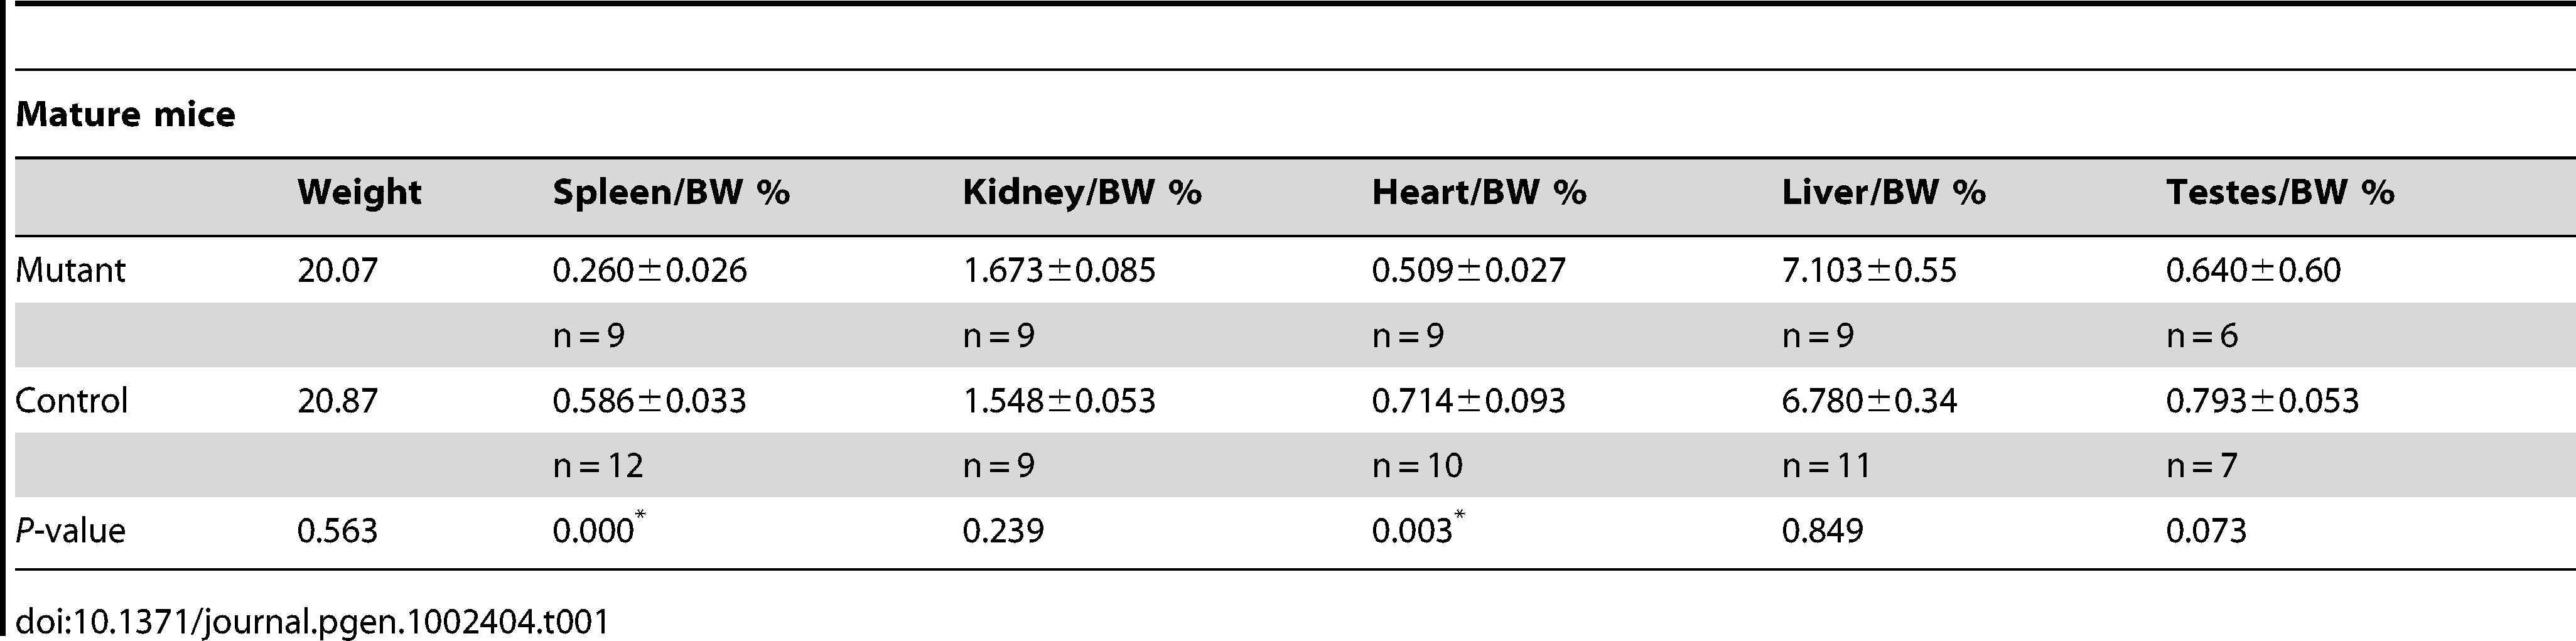 Summary of the gravemetrics of adult mice deleted for Wt1.